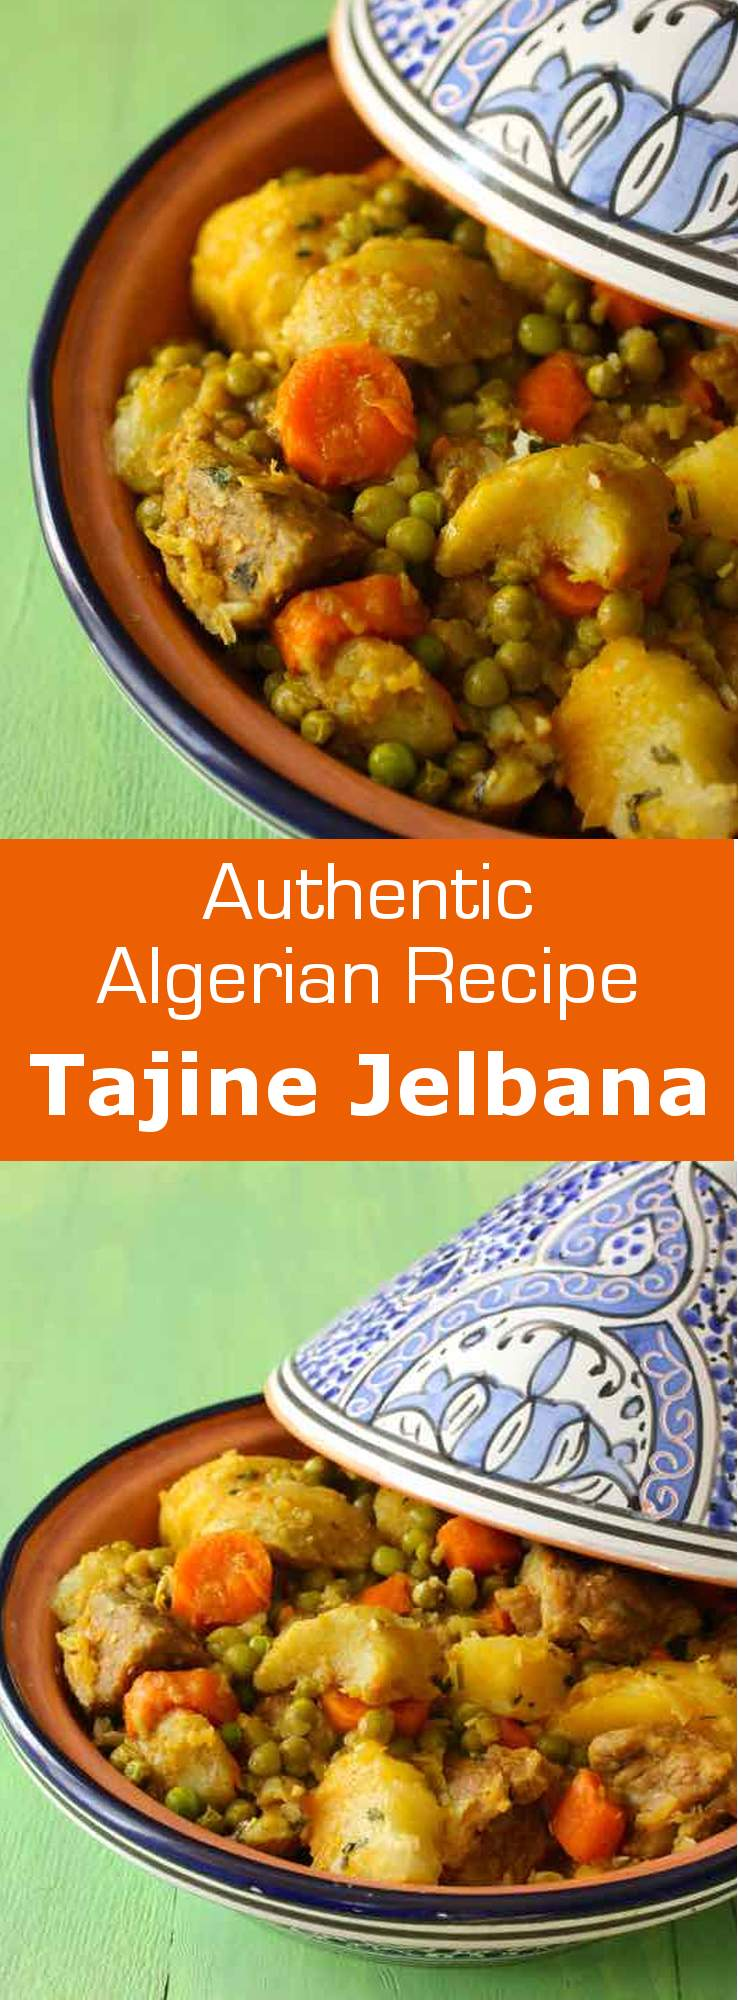 Tajine jelbana is a traditional North African meat stew prepared with peas, artichoke, potatoes and carrots. #algeria #tunisia #maghreb #northafrica #196flavors